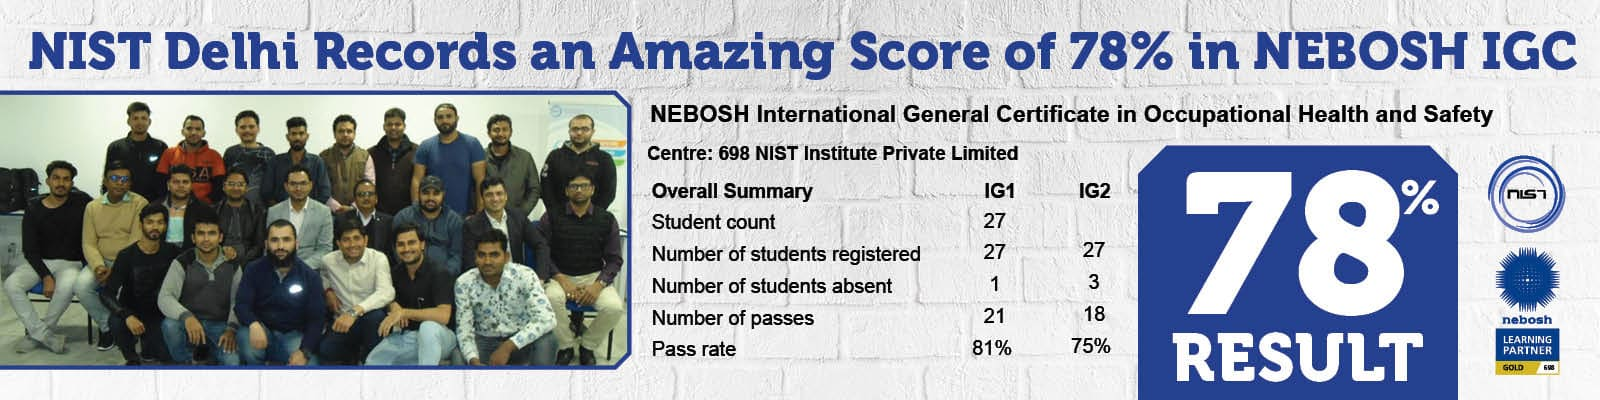 nist-delhi-records-an-amazing-score-of-78-in-nebosh- igc